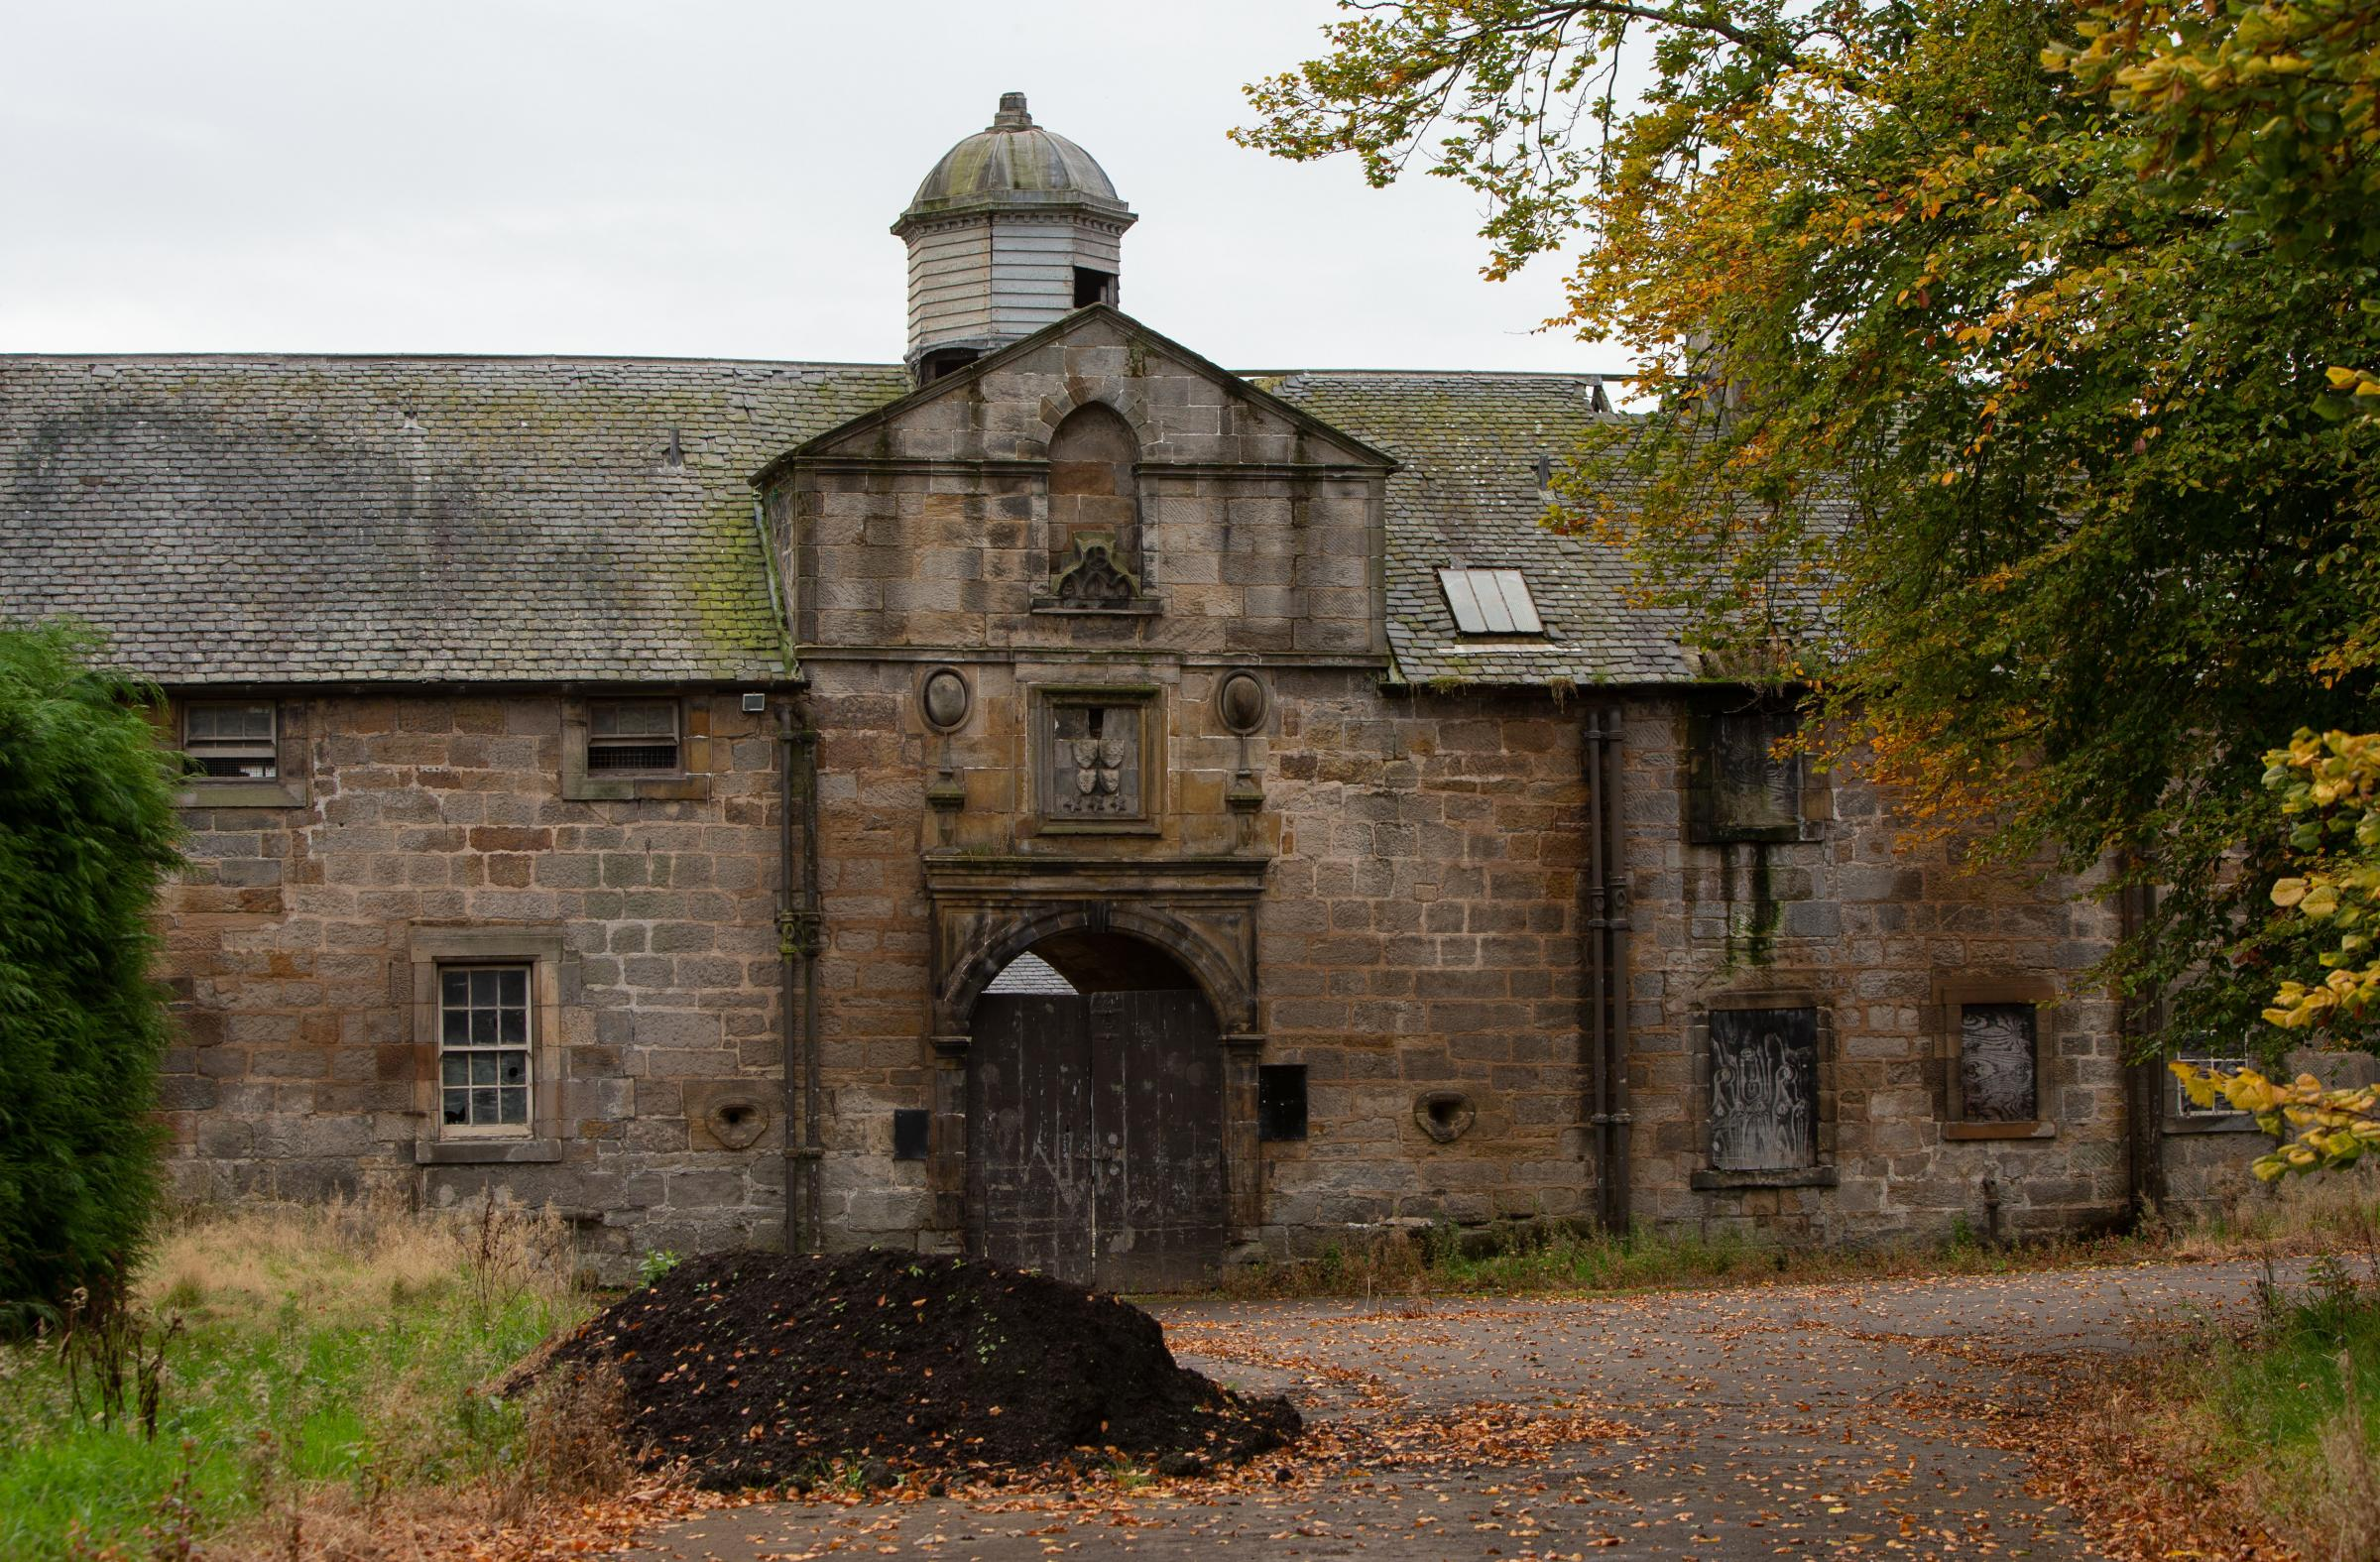 A funding bid has been submitted to develop the stables at Pollok country park. Photograph by Colin Mearns.